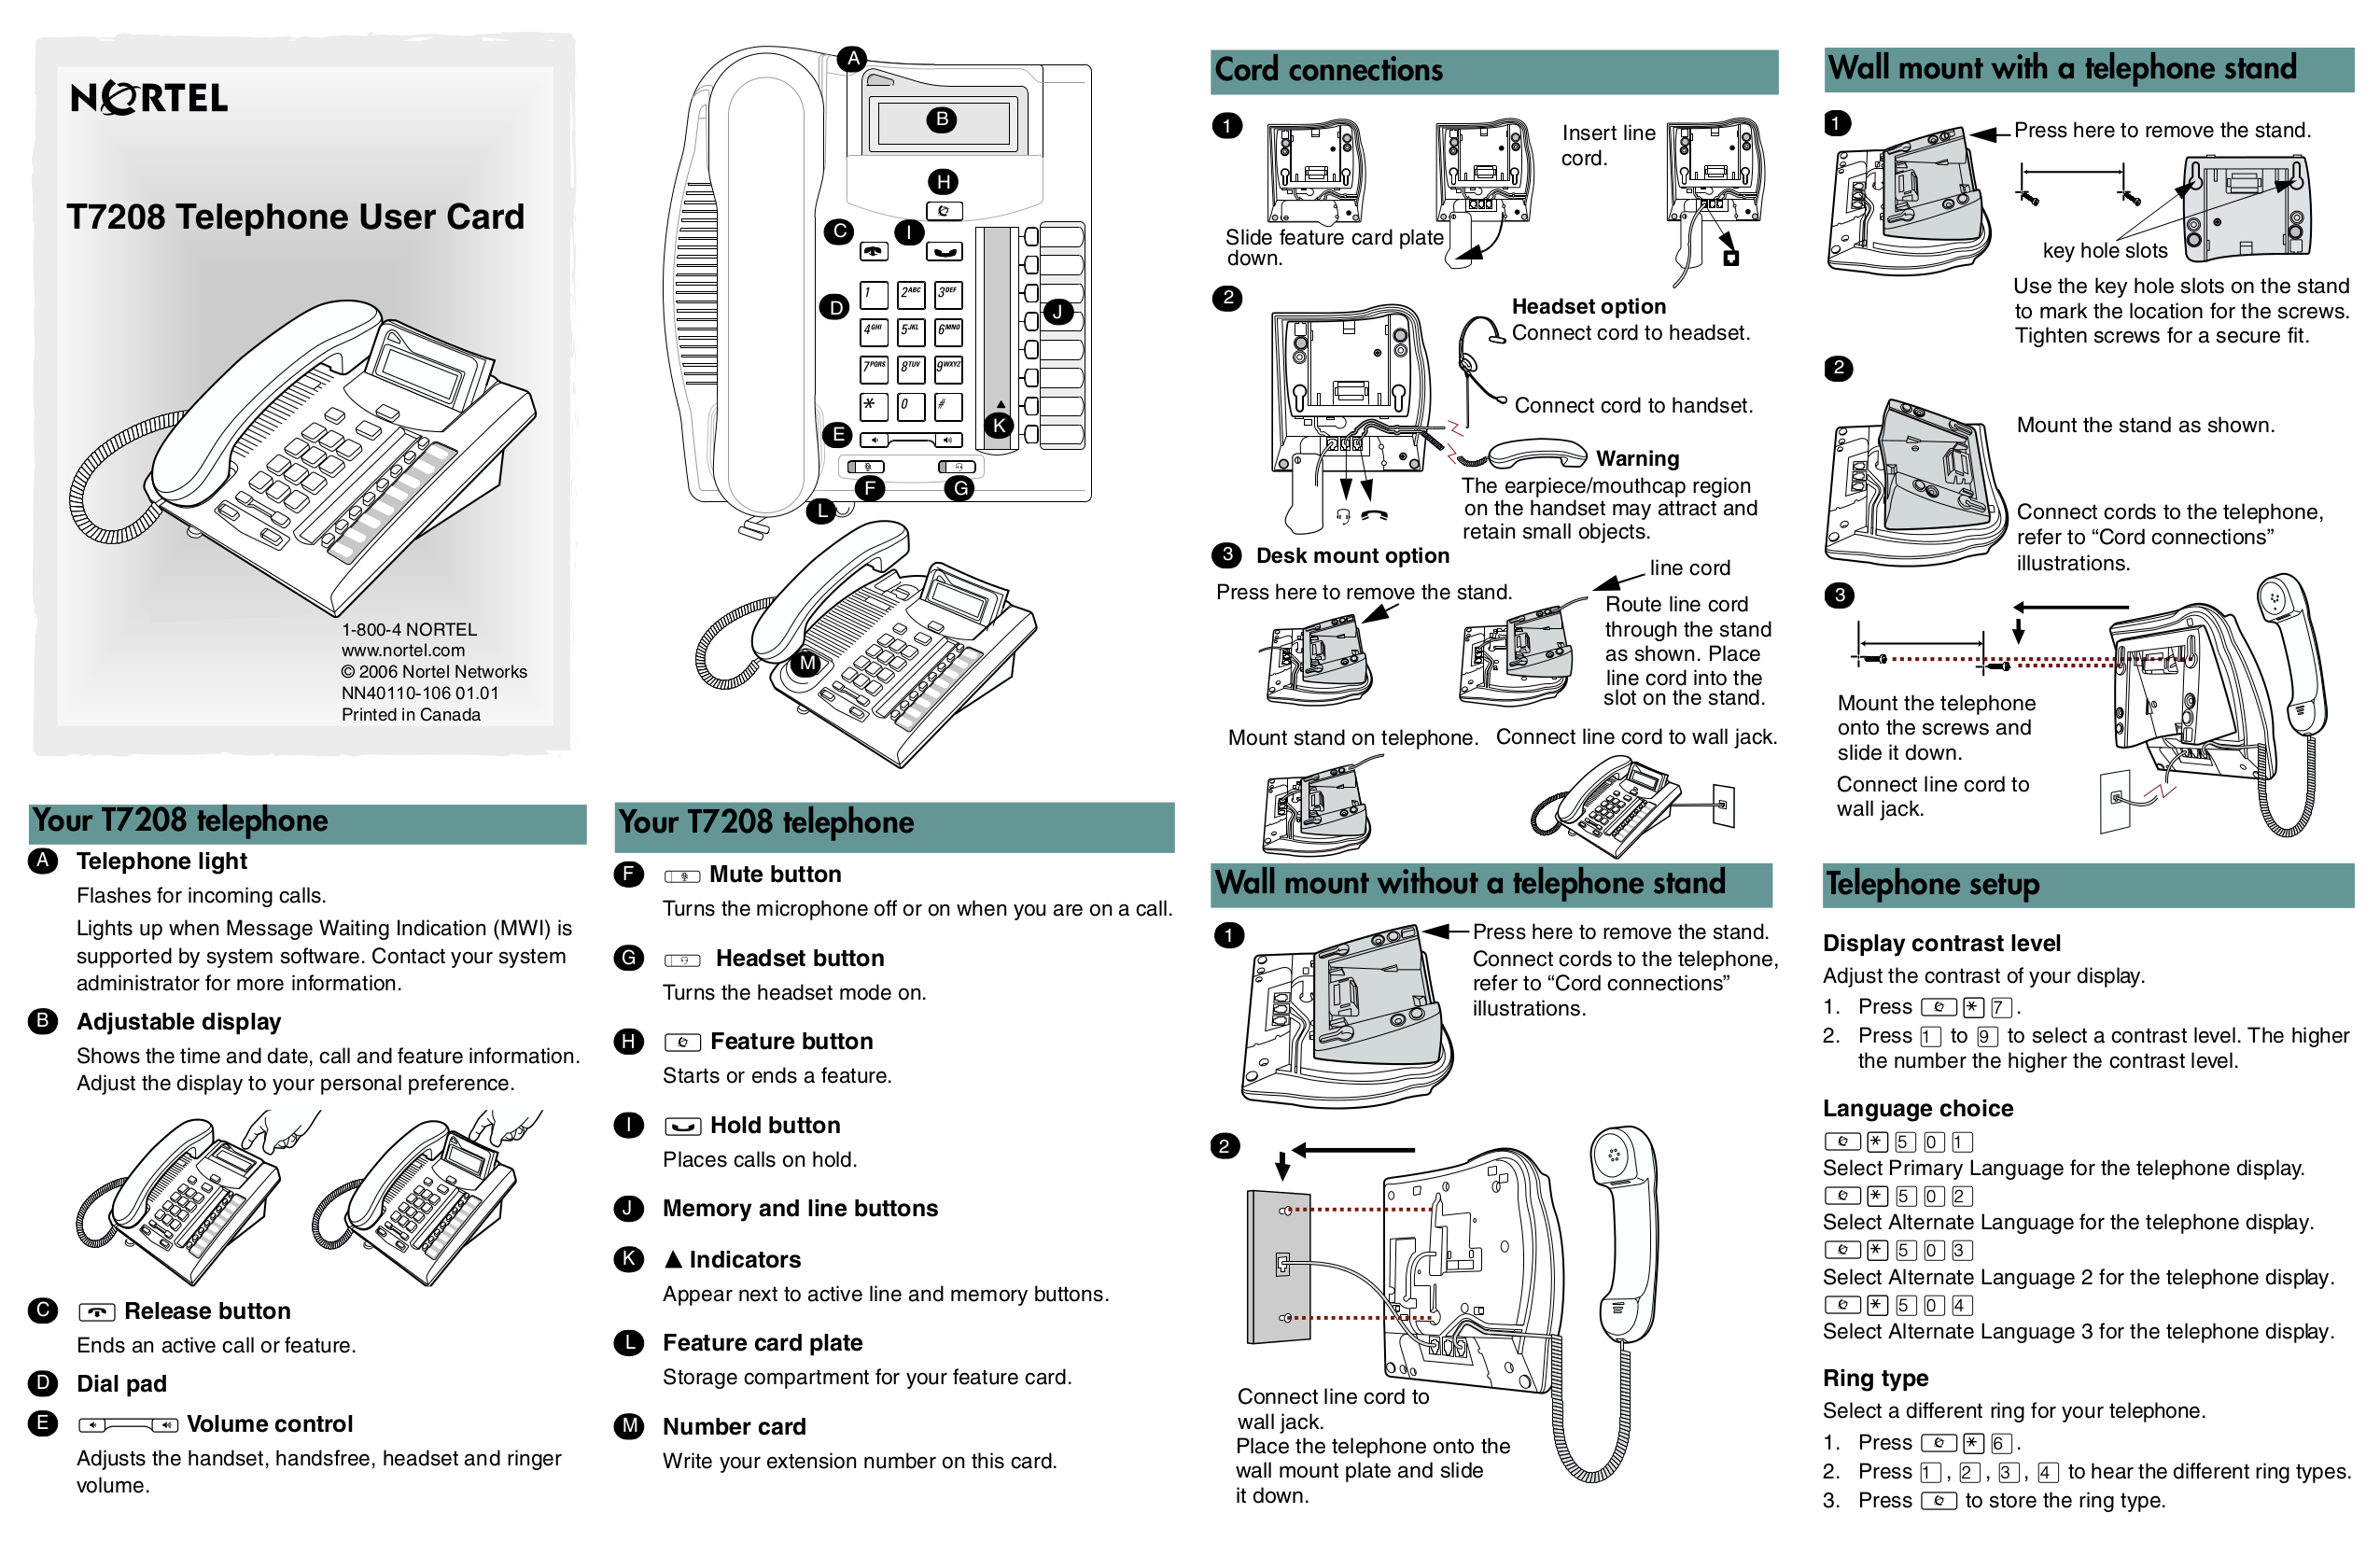 Download free pdf for Nortel T7208 Telephone manual